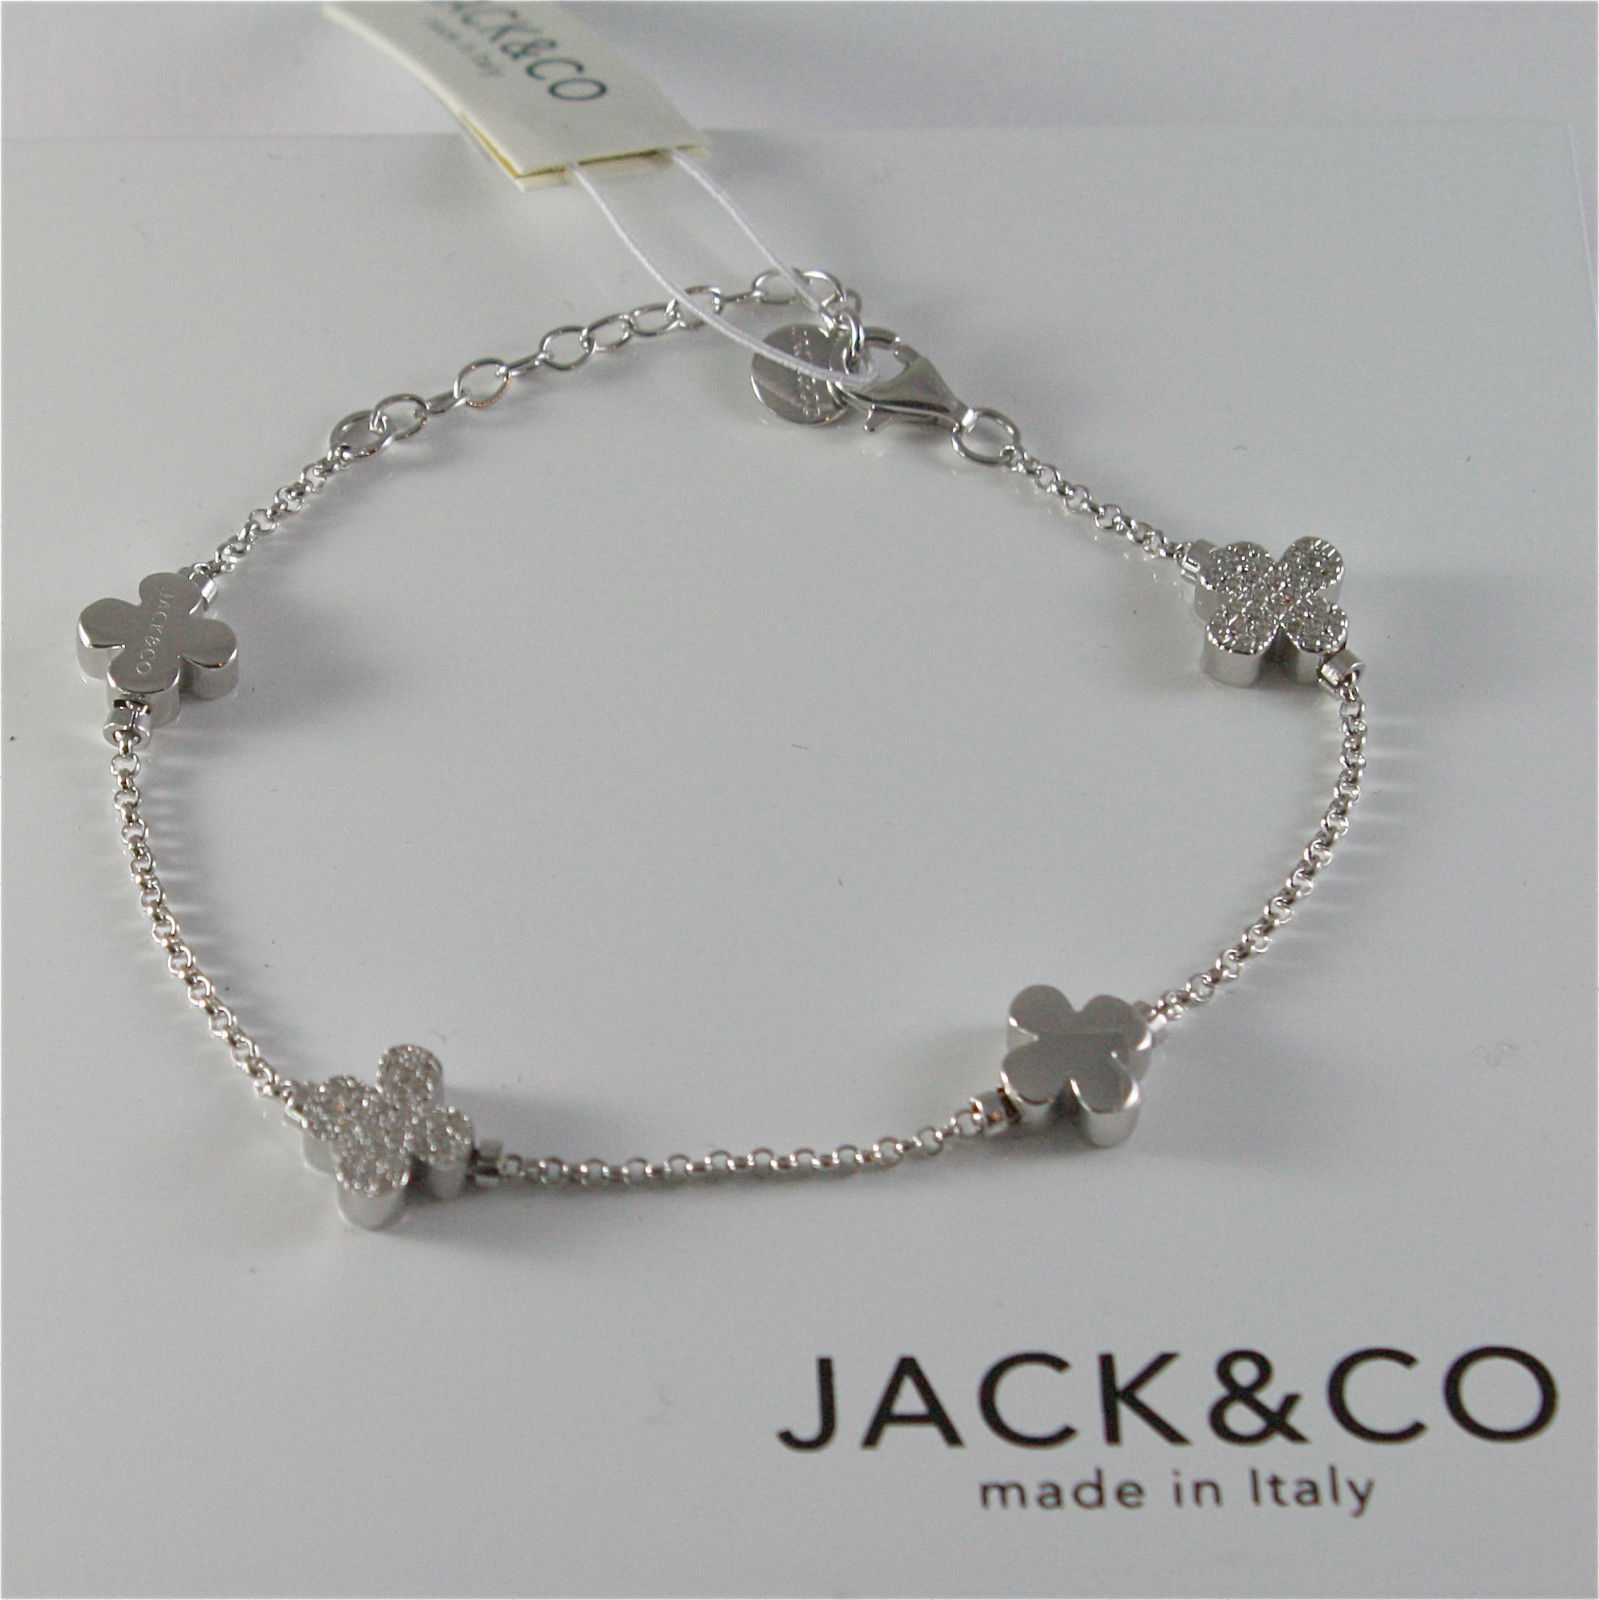 SILVER 925 BRACELET JACK&CO WITH FOUR-LEAF CLOVER AND ZIRCON CUBIC JCB0742